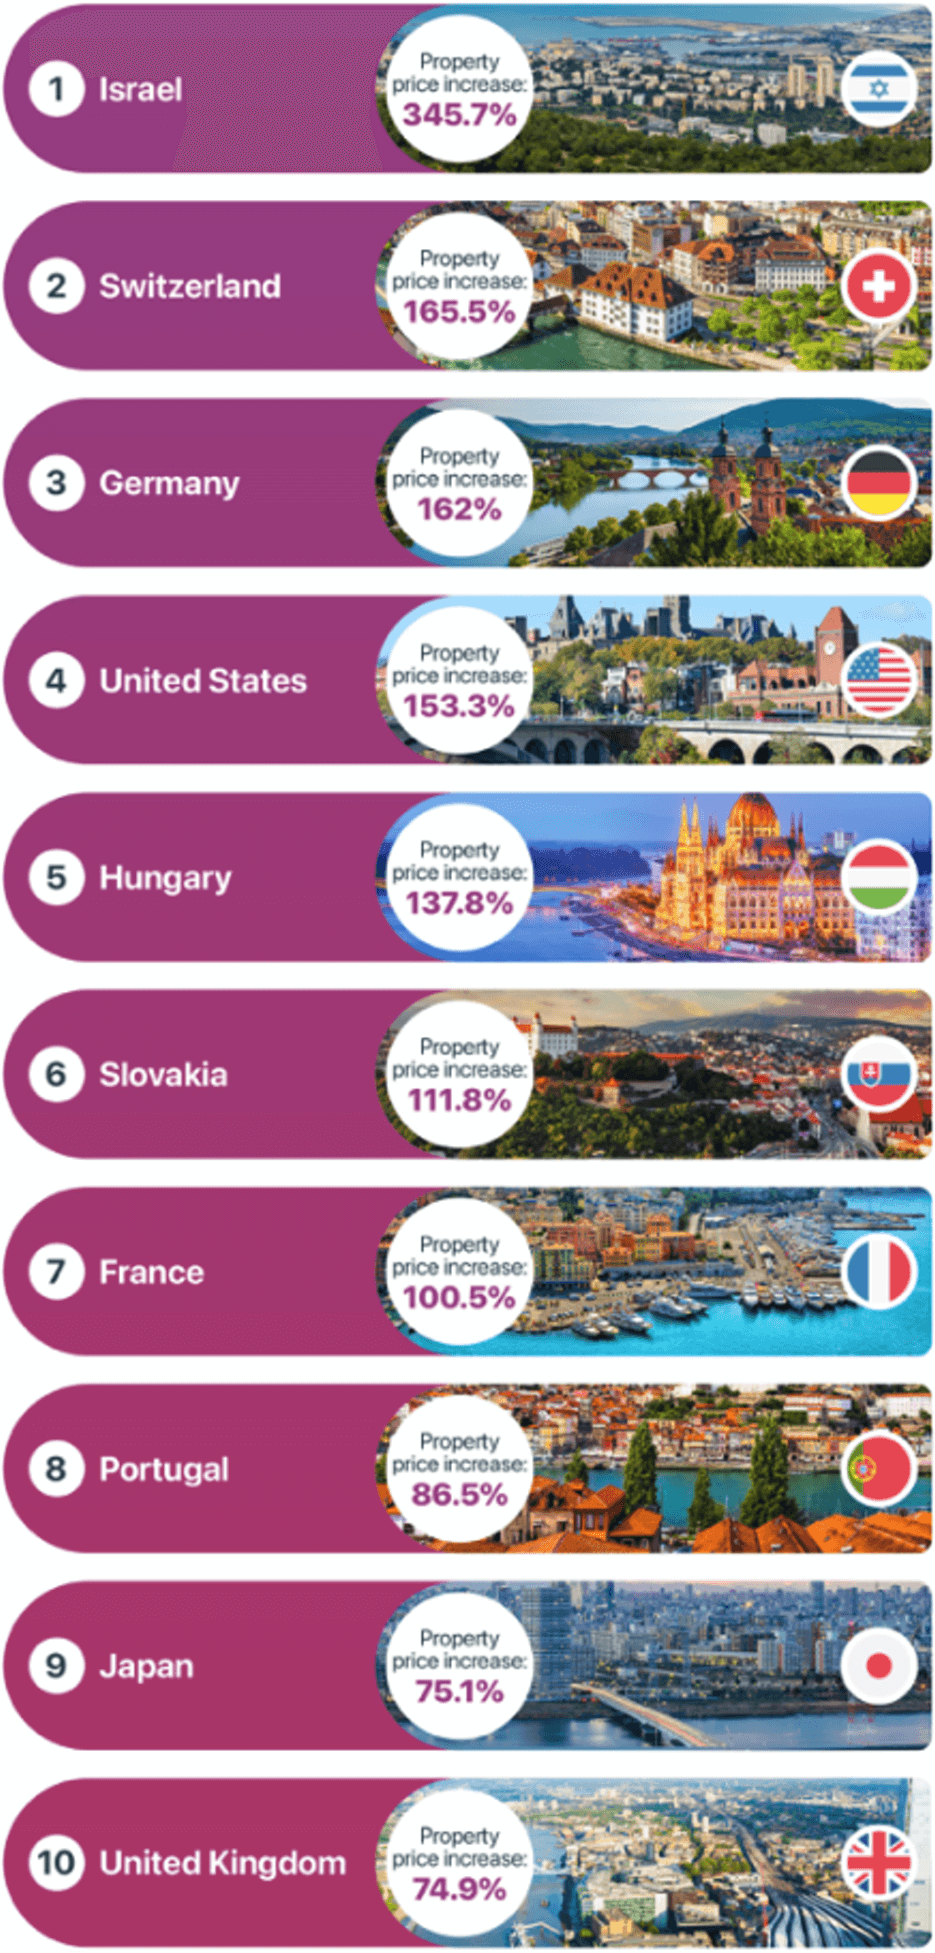 Money.co.uk's list of top 10 countries with highest real estate prices